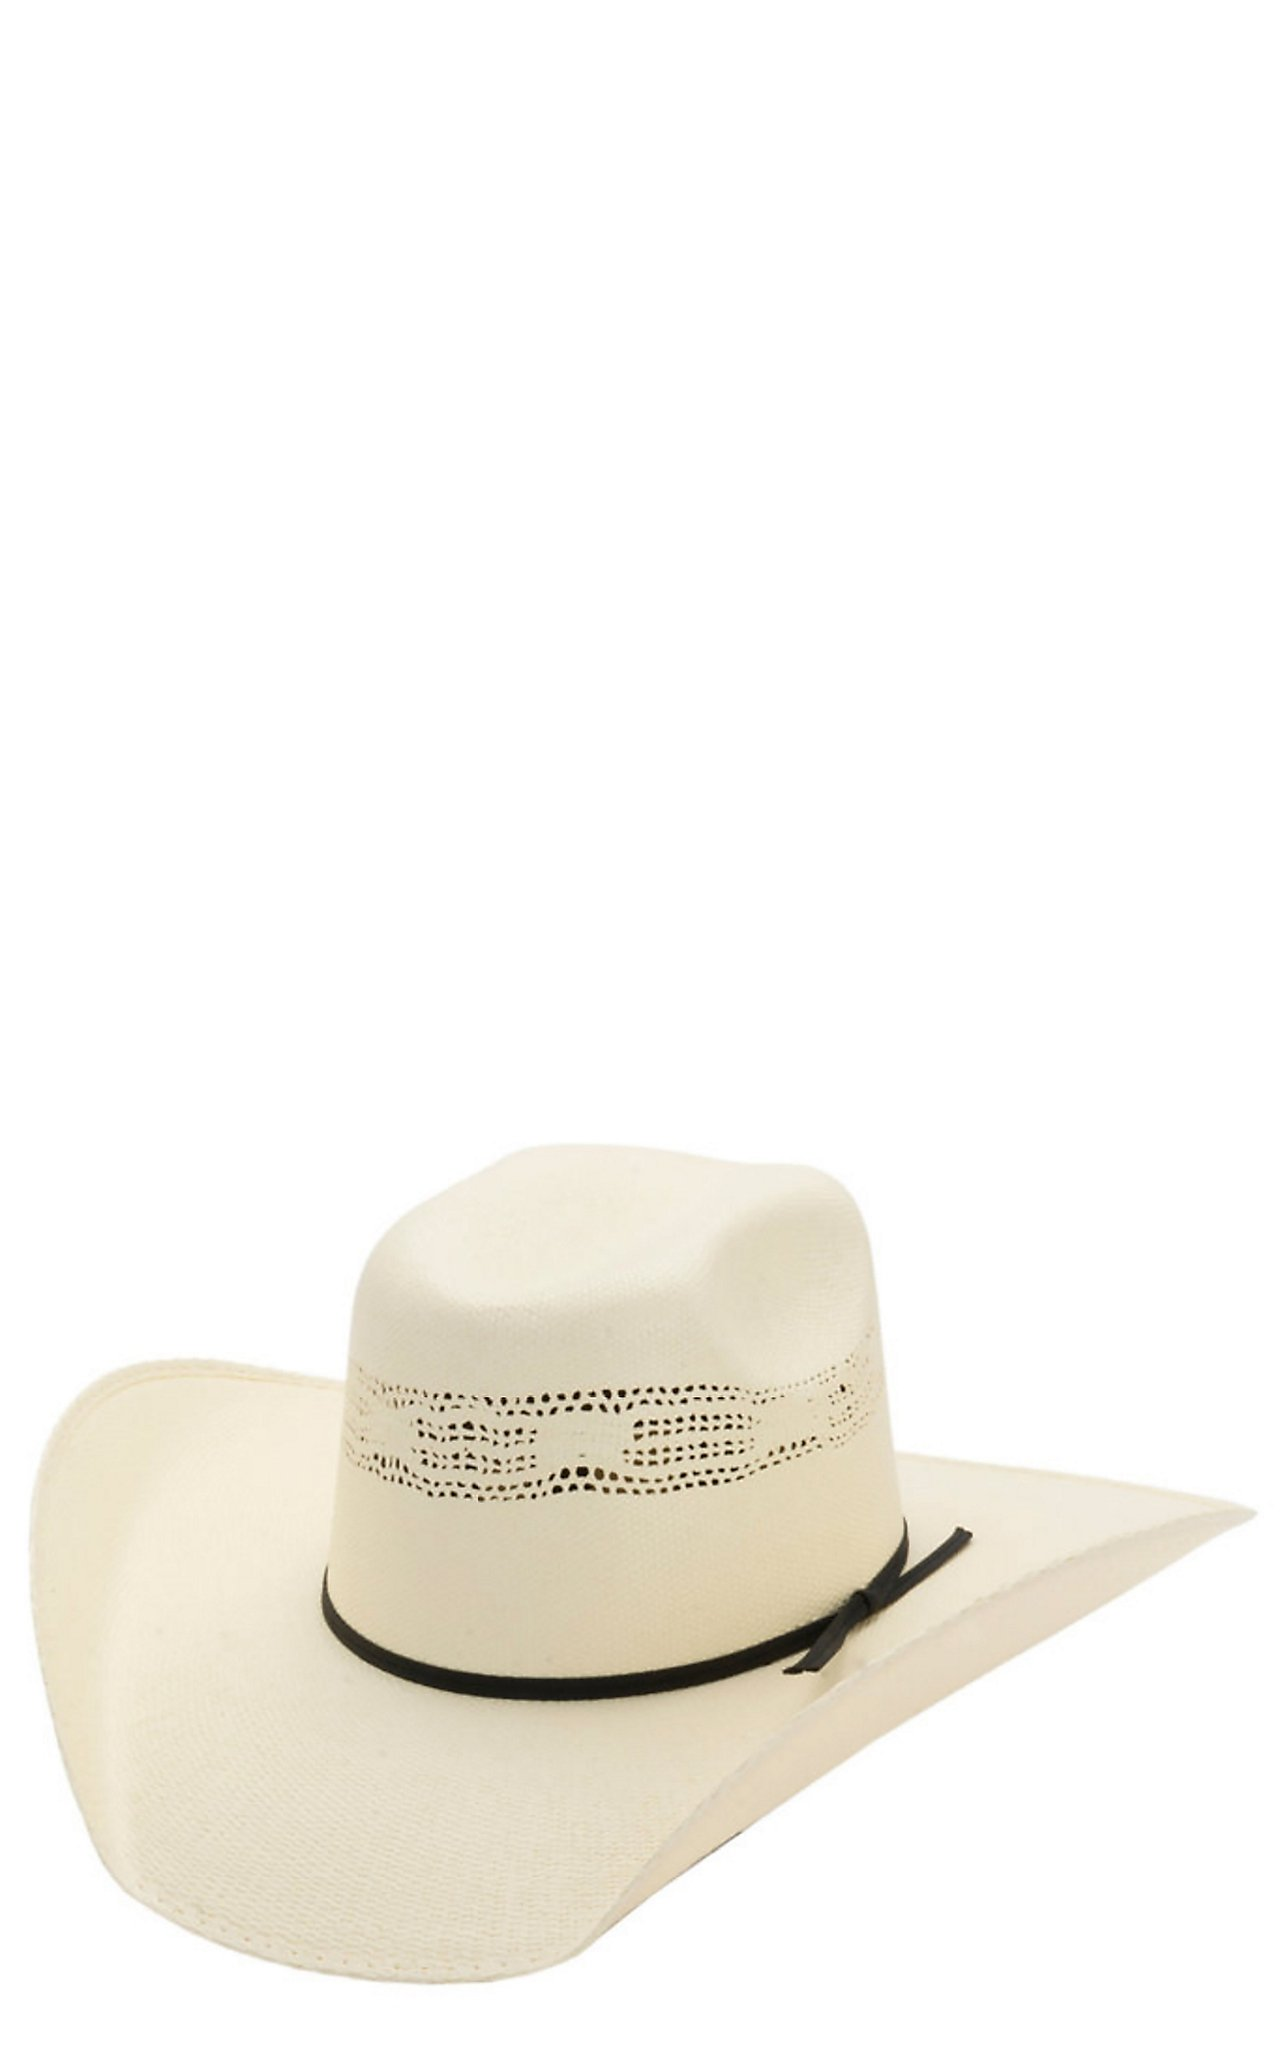 Cavenders 10X Natural Bangora Vented Crown Straw Cowboy Hat 27BREP425  57d0106a8598